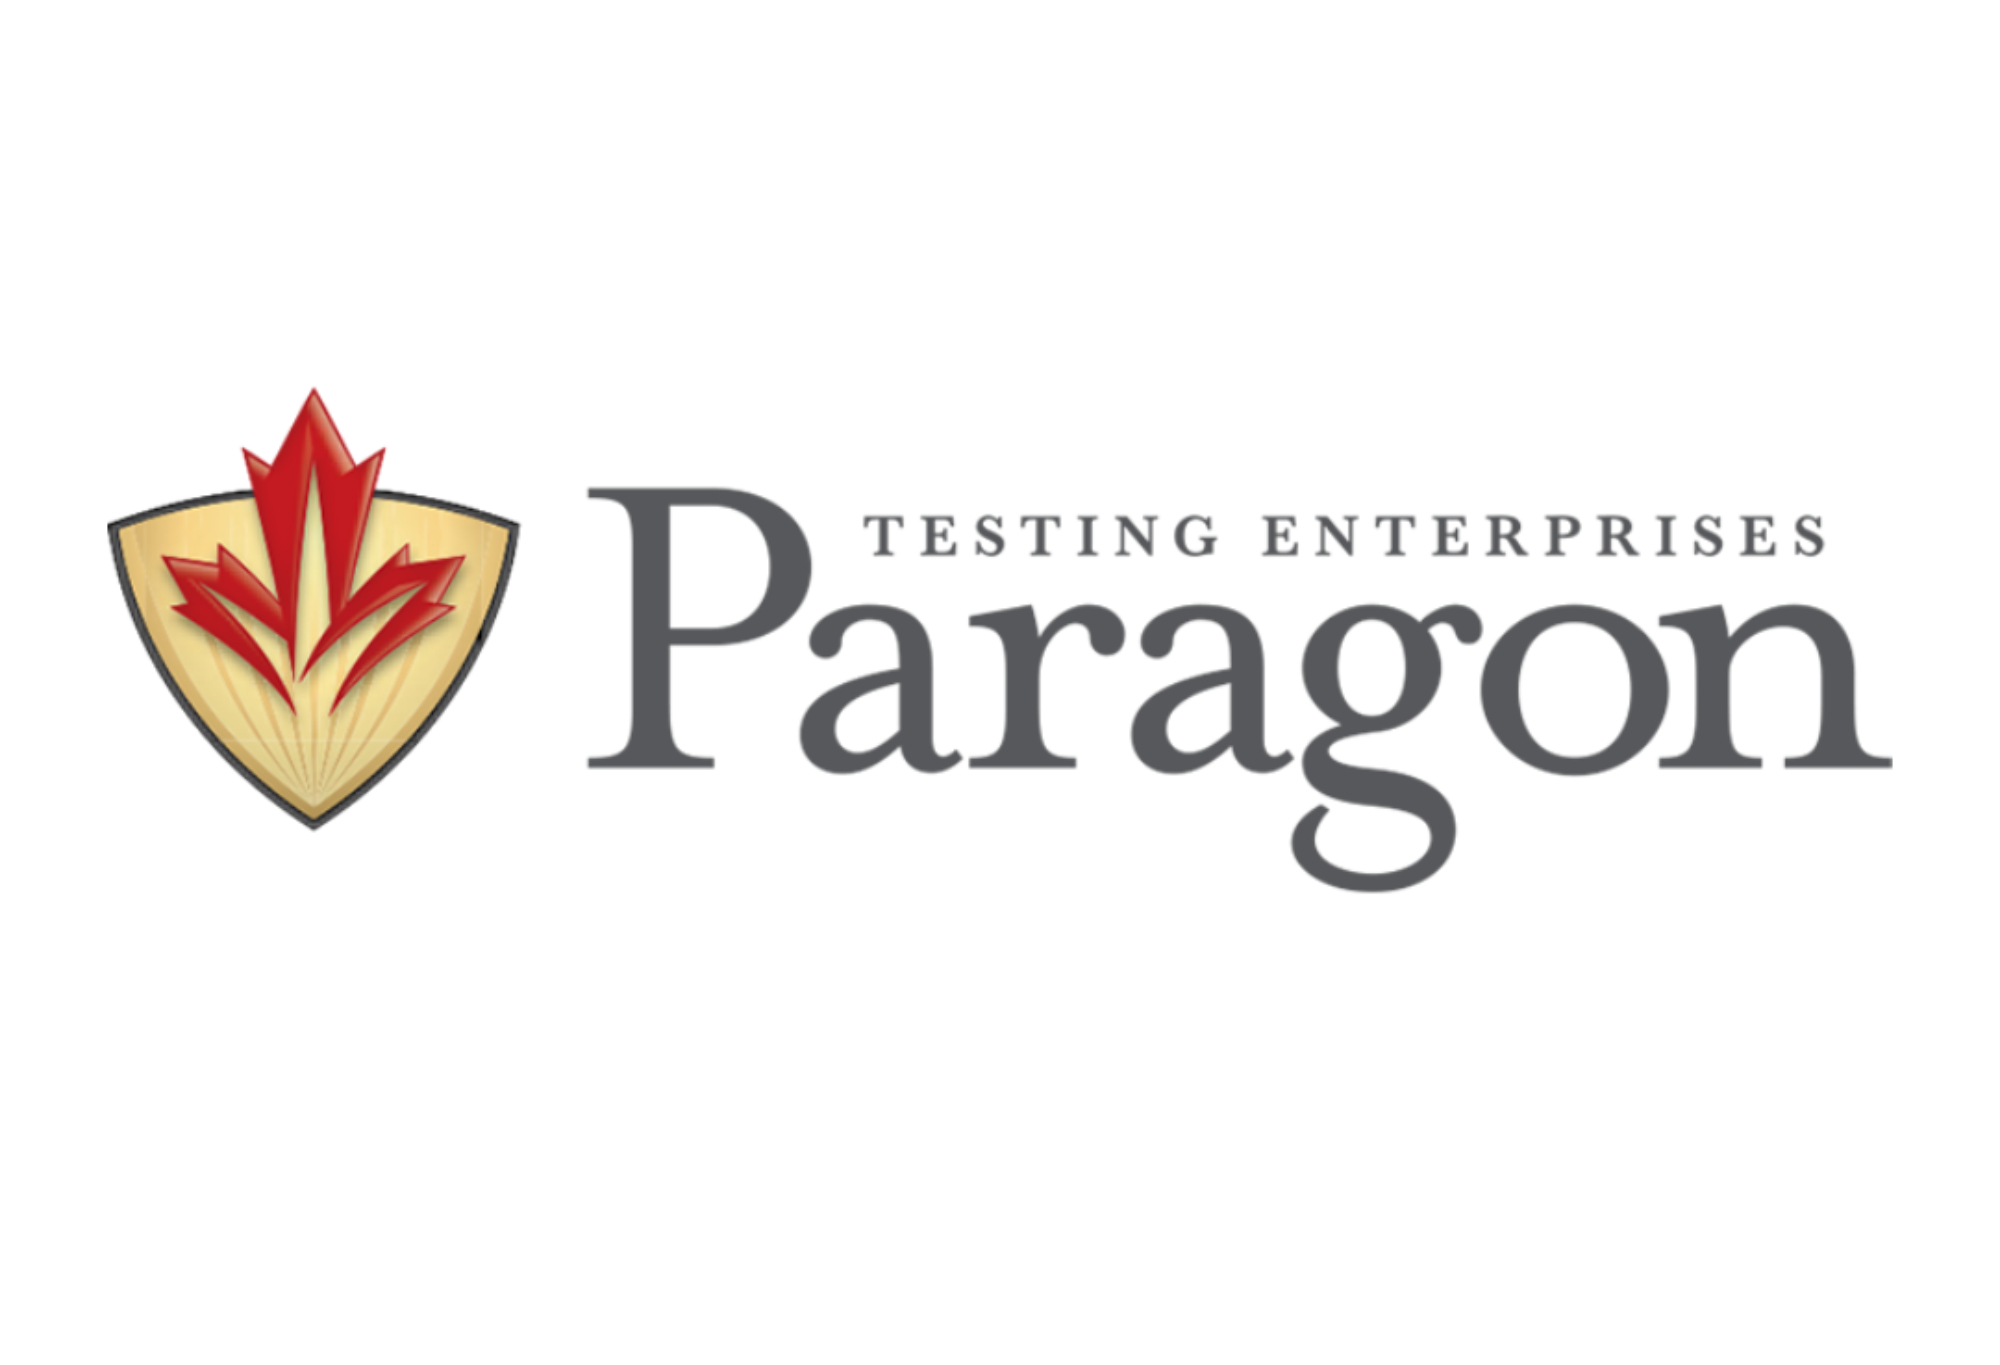 Paragon is an Outstanding English Language Testing Partner